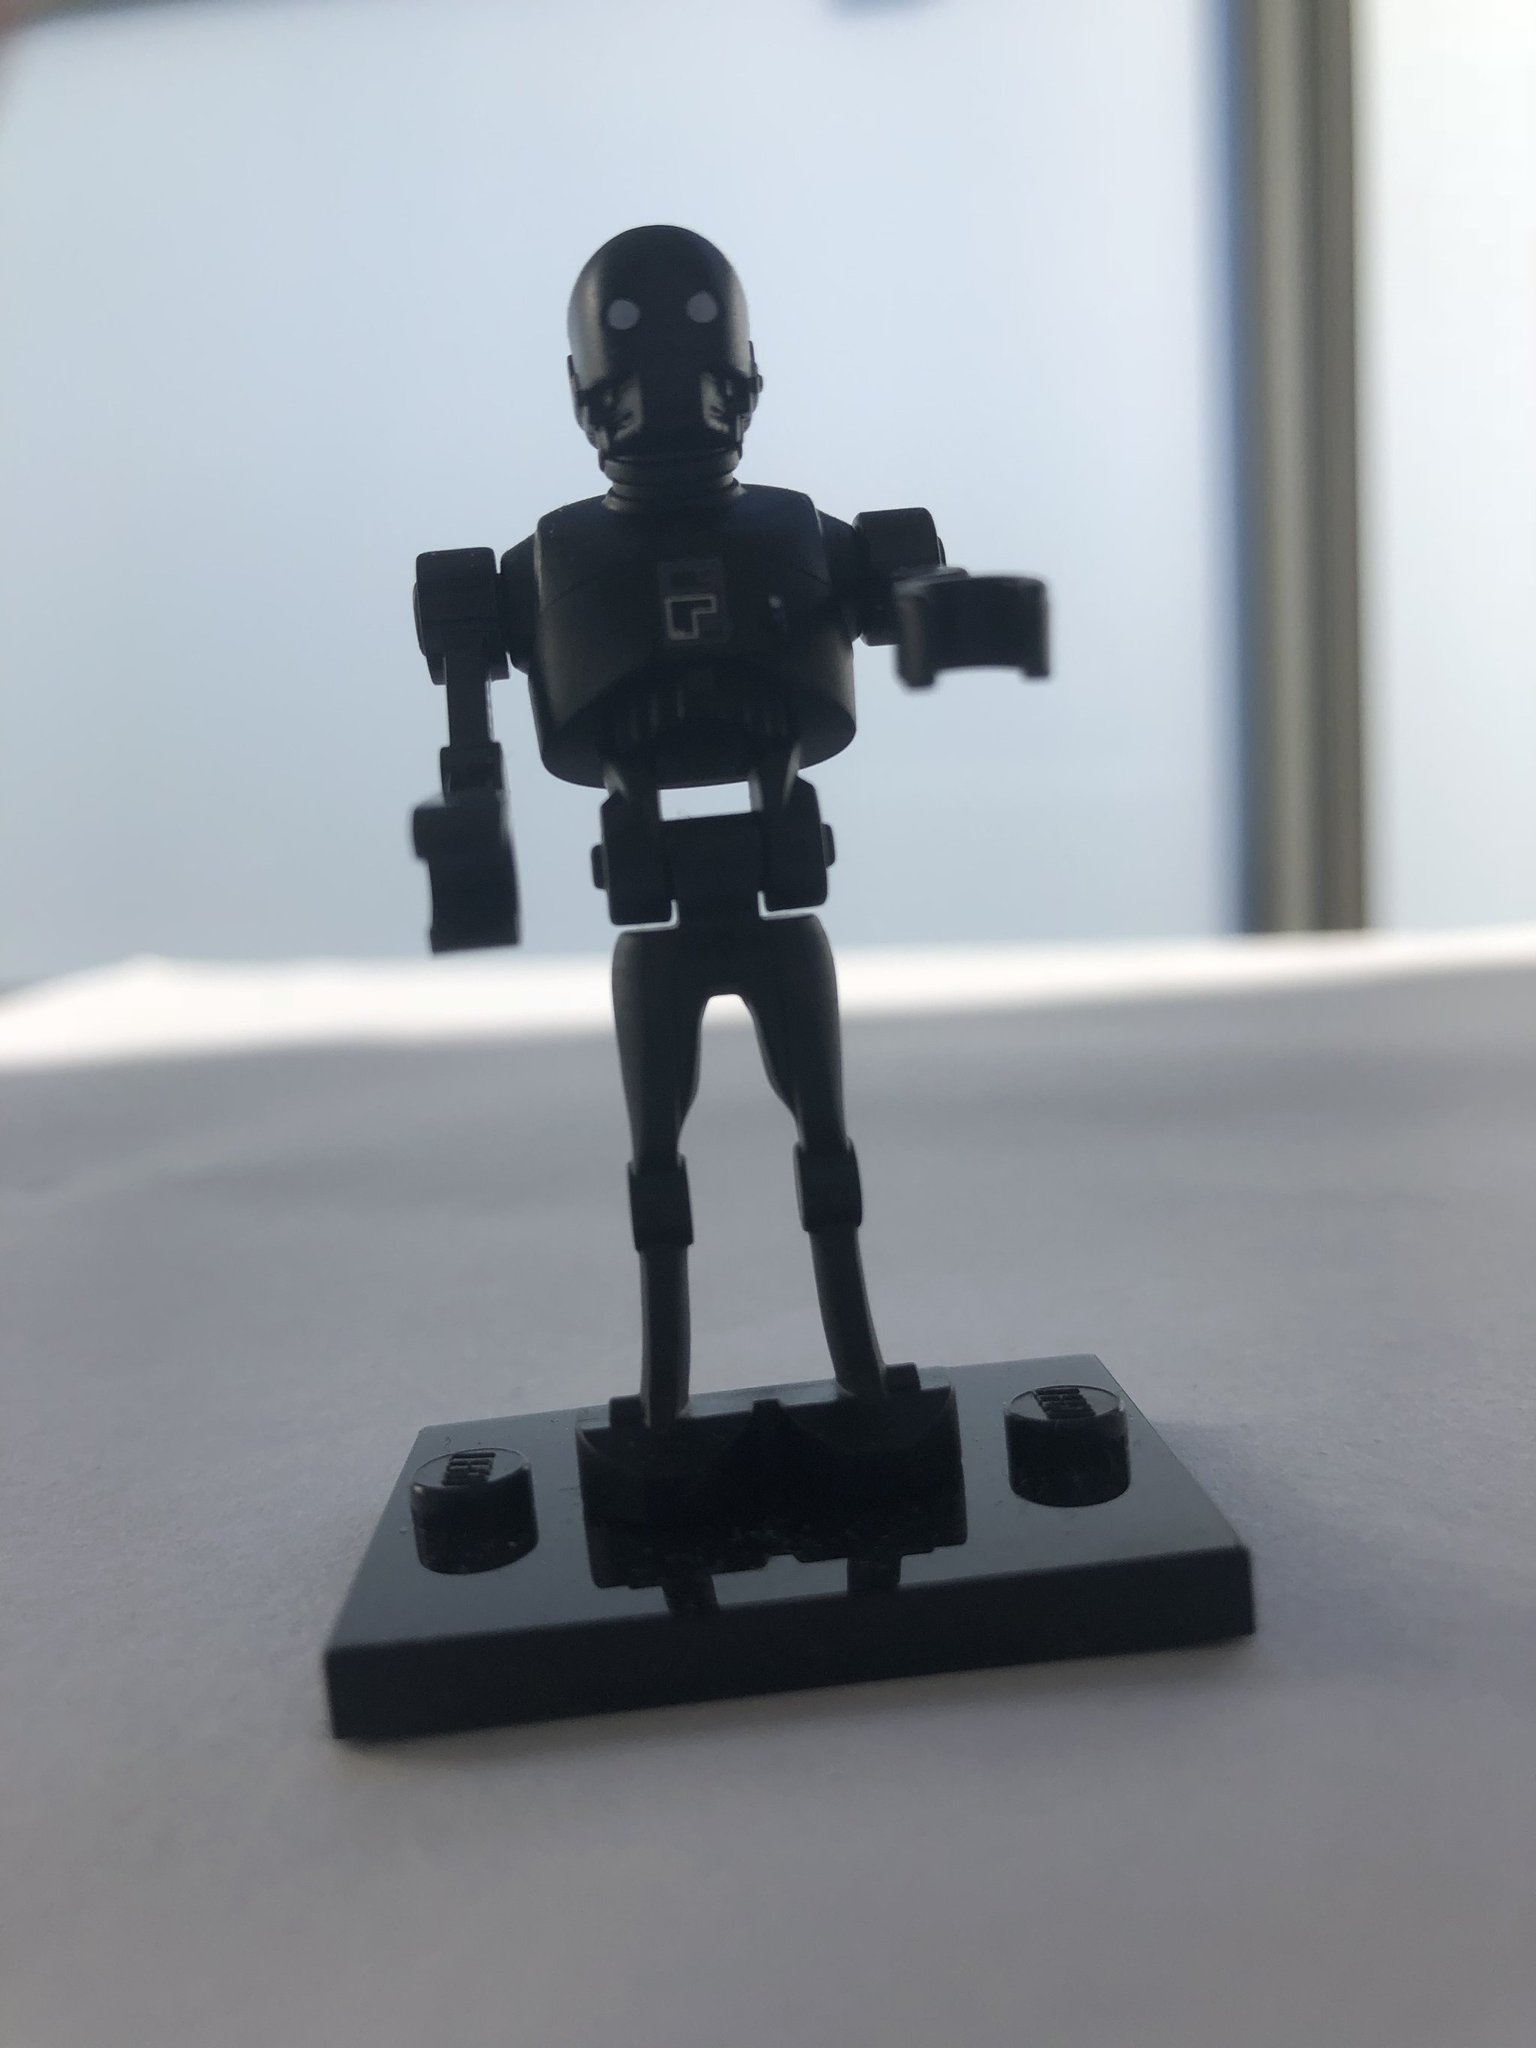 LEGO K-2SO Droid NY